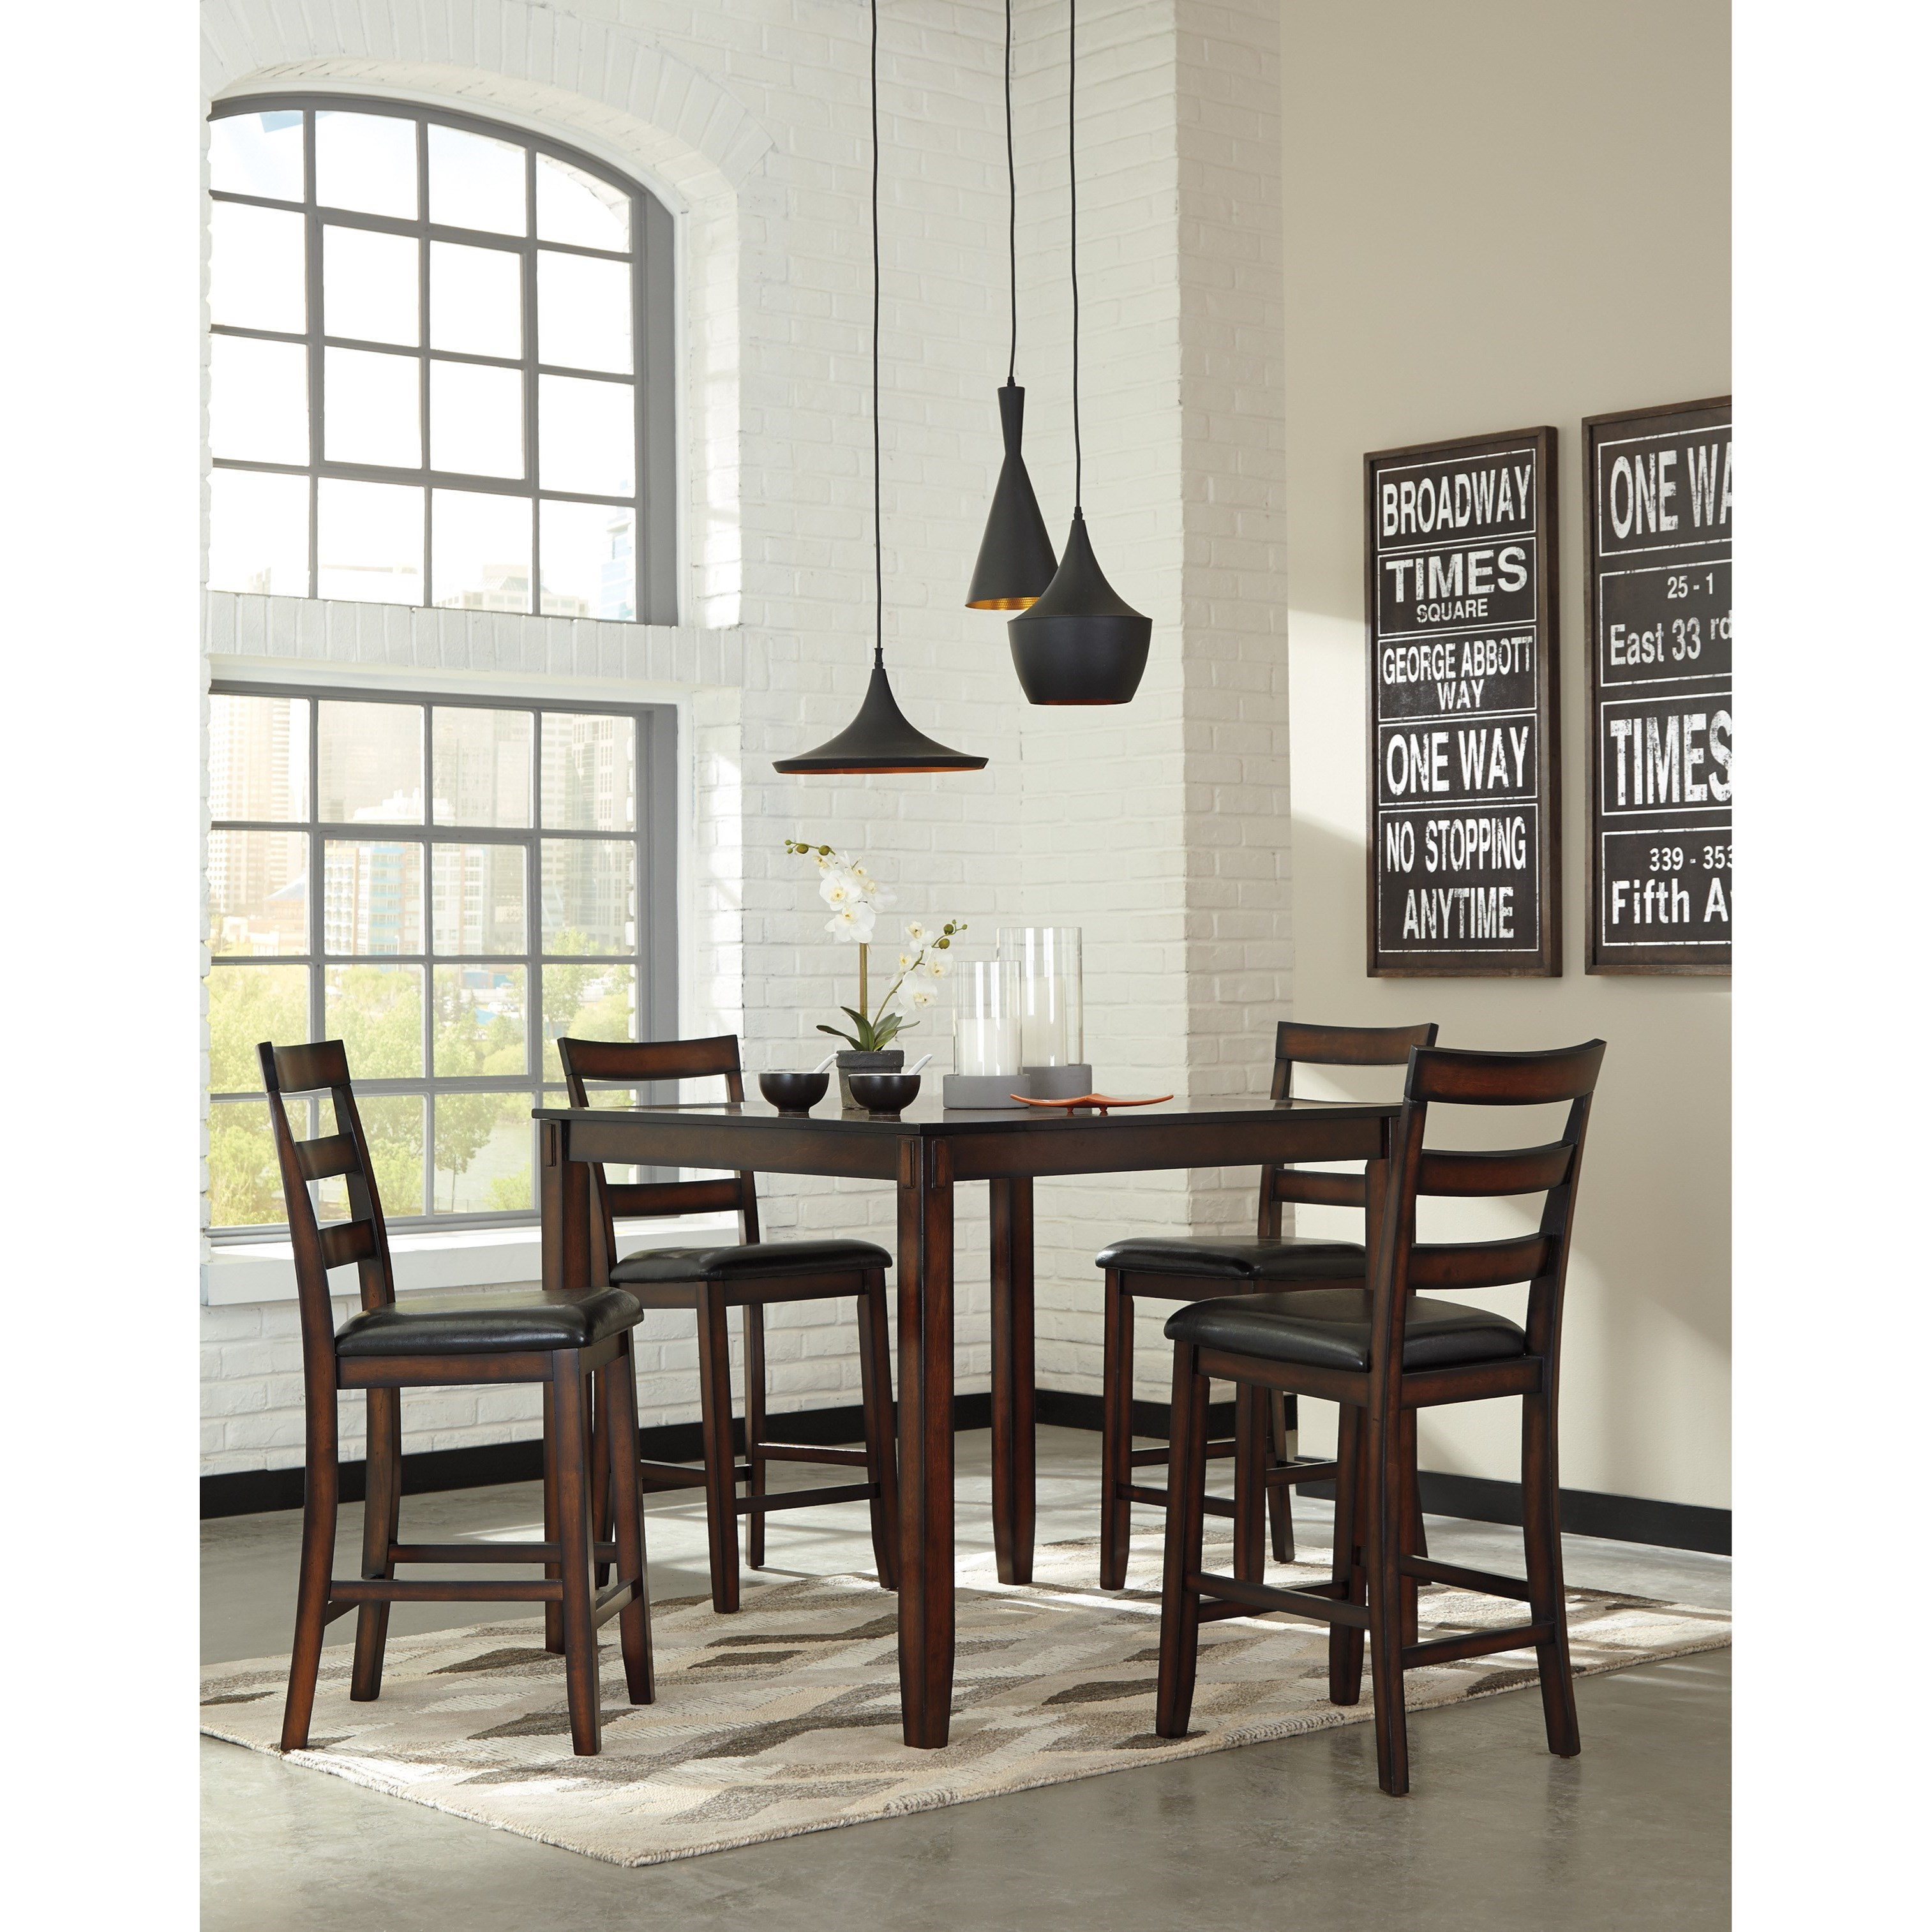 5 Piece Dining Room Counter Table Set